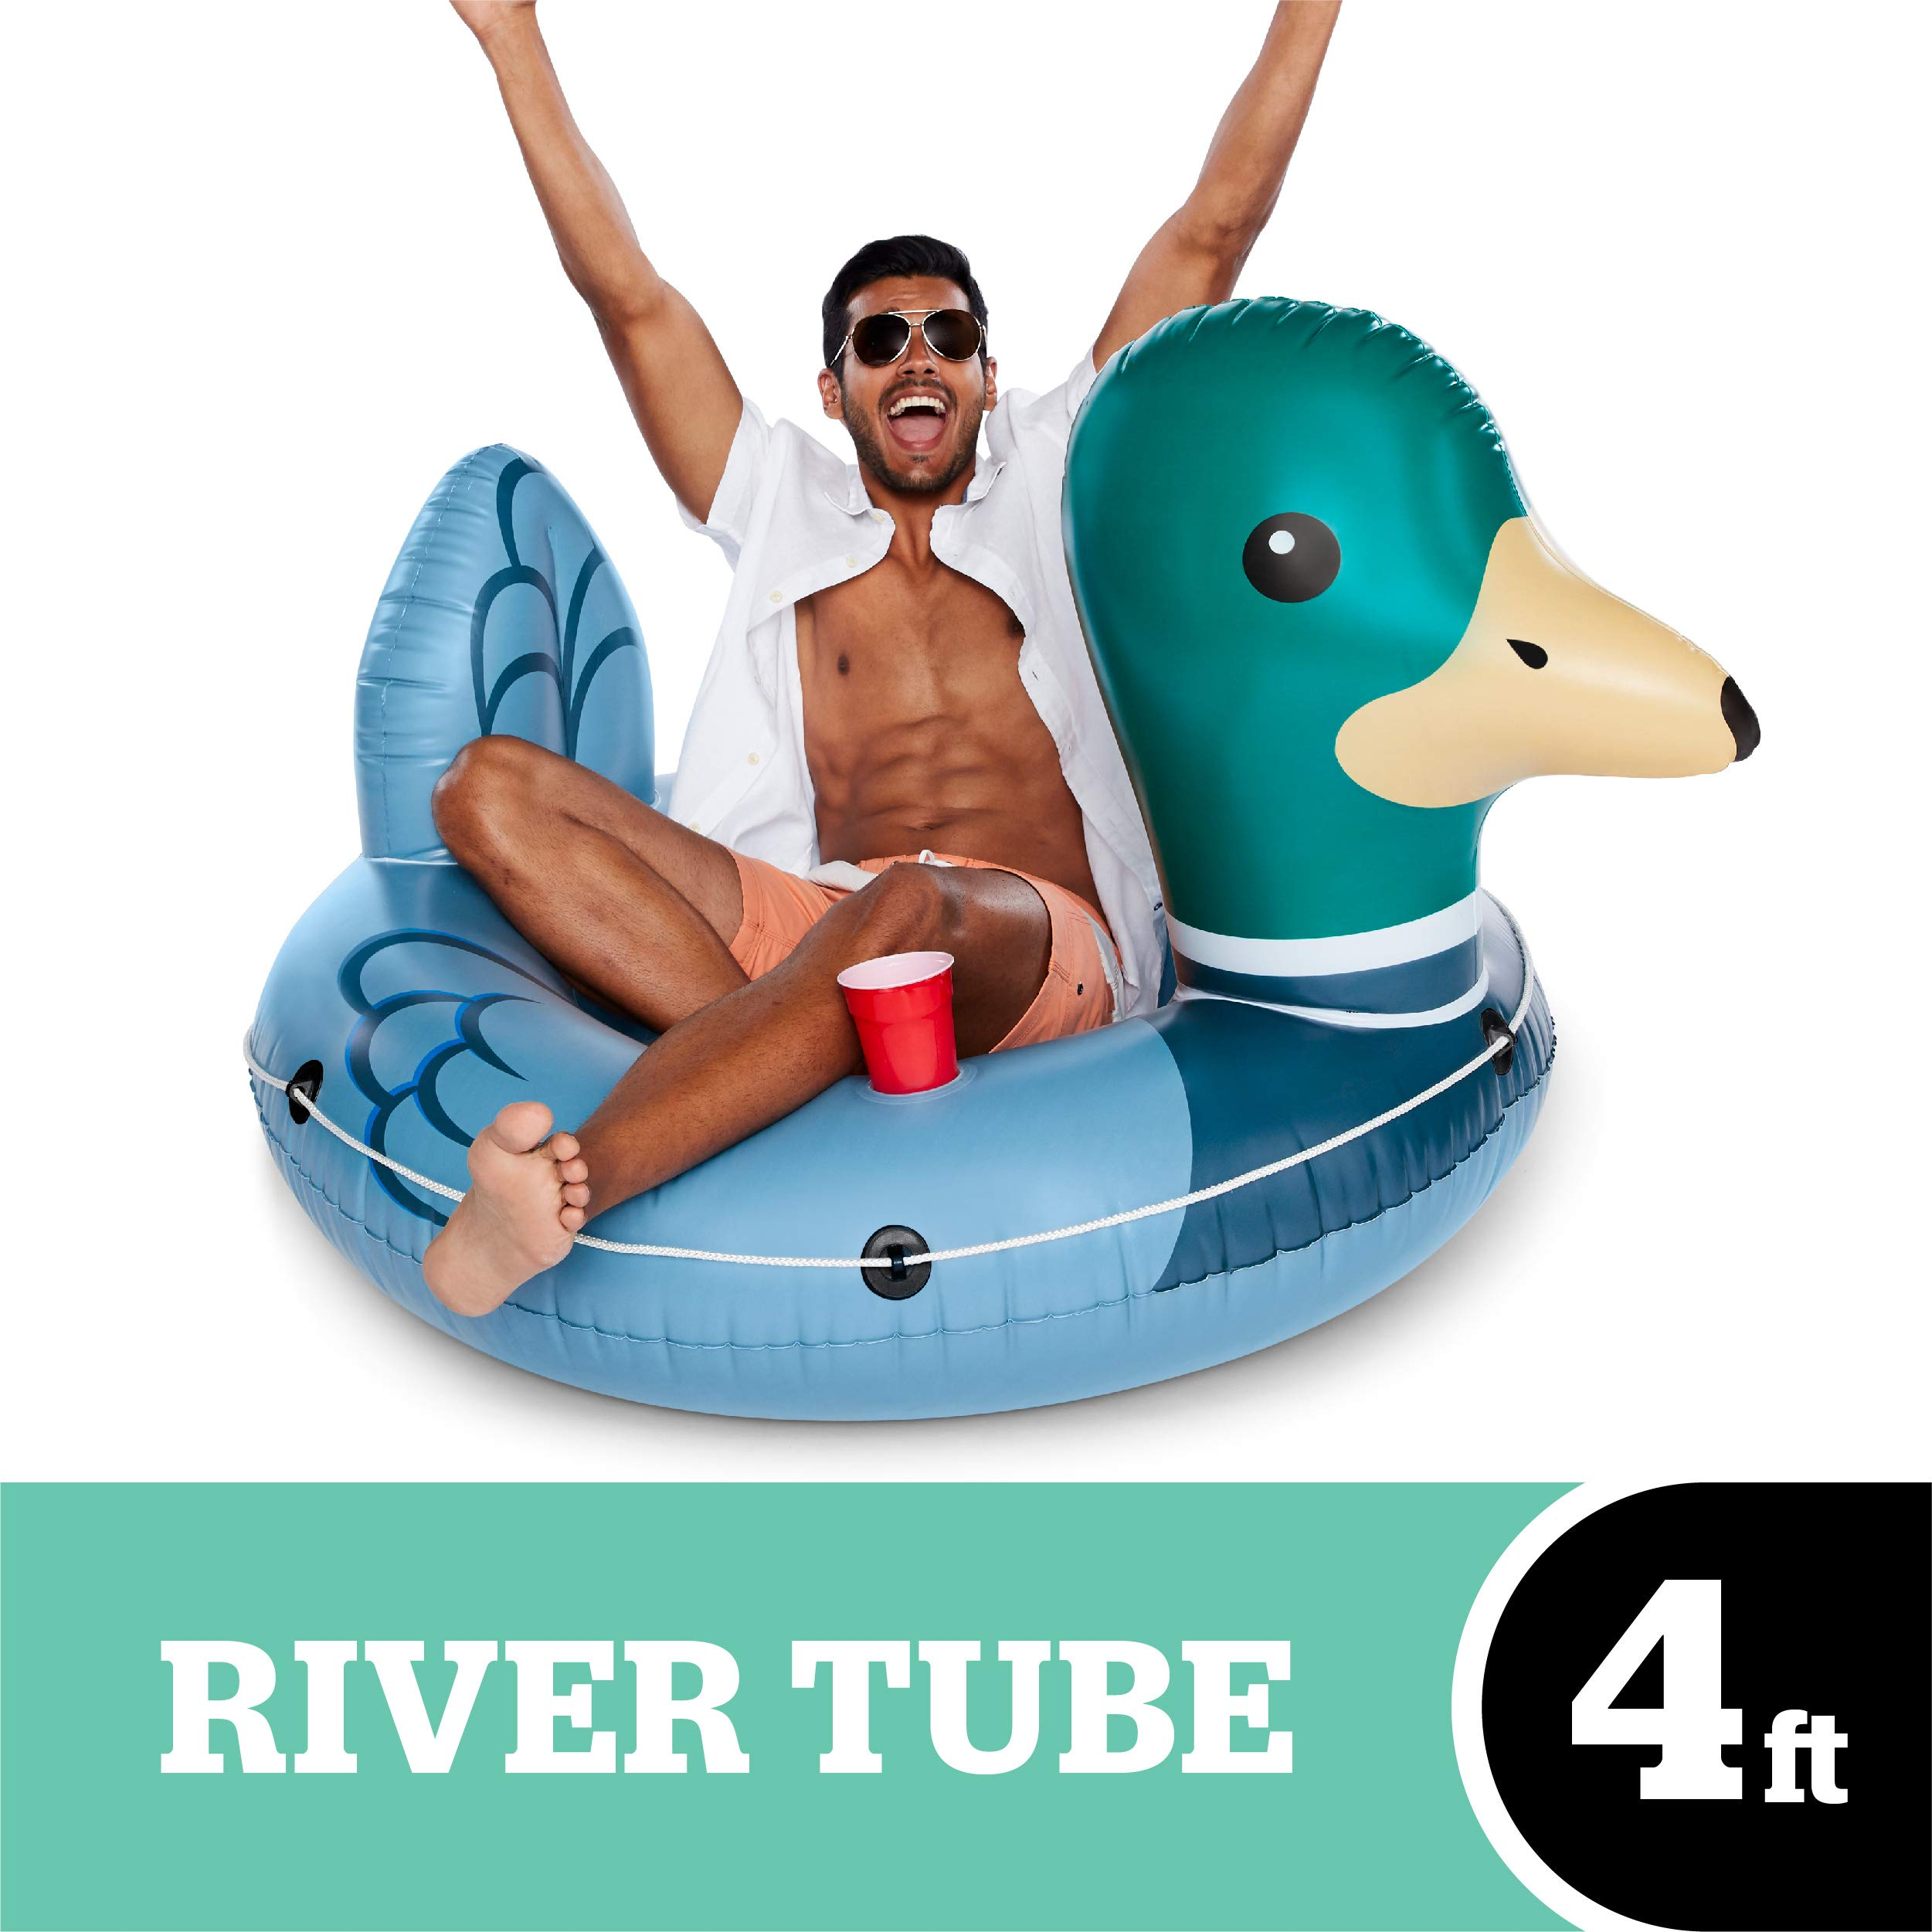 BigMouth Inc Driftin' Duck River Raft, Giant Inflatable River Tube with Rope, Funny Float by BigMouth Inc